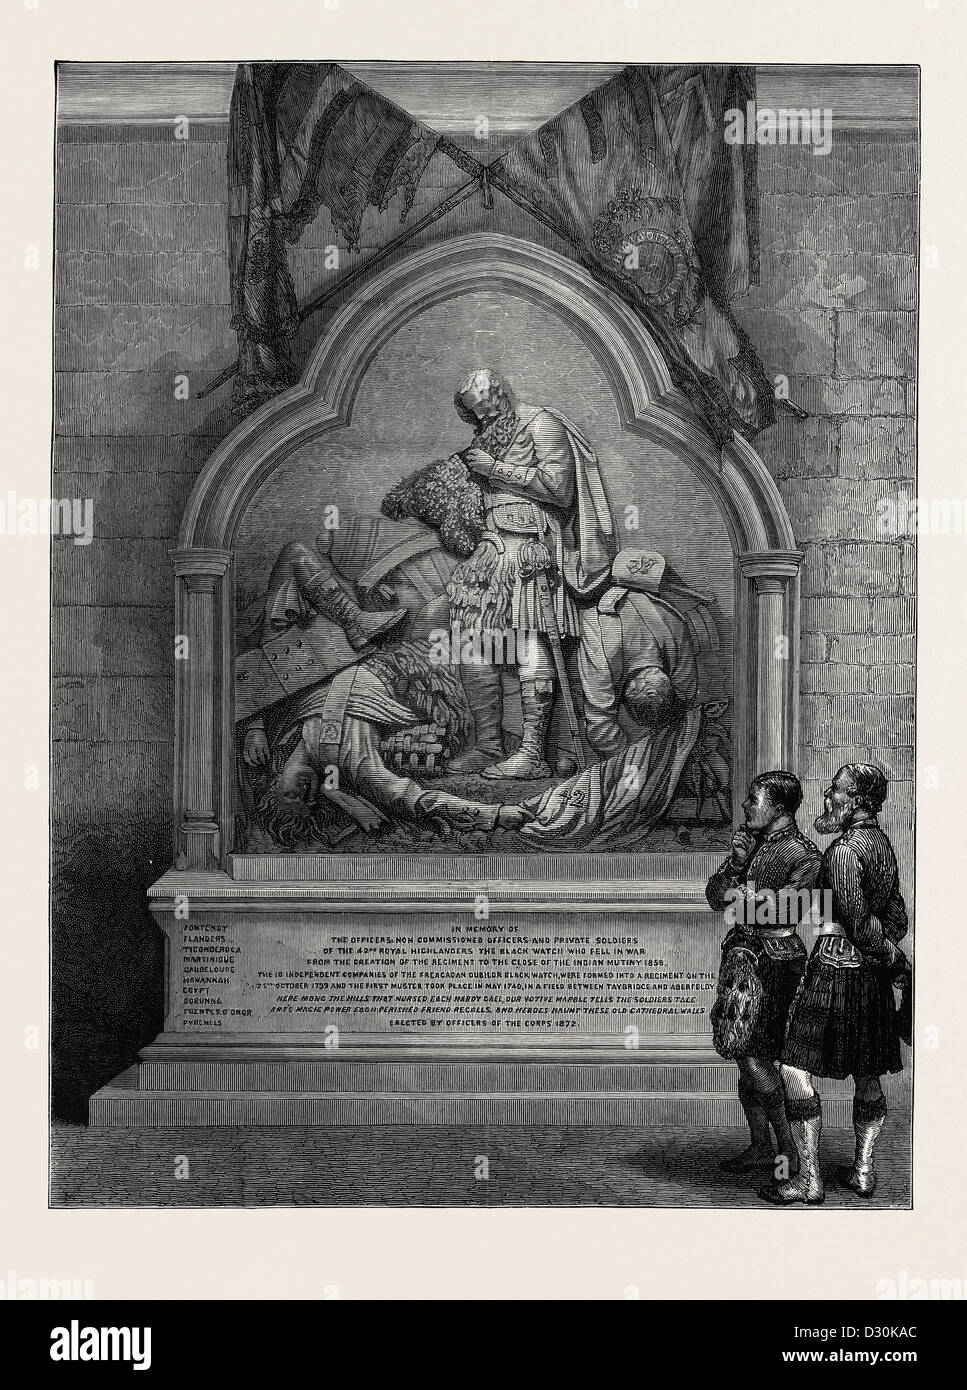 MONUMENT TO THE 42ND HIGHLANDERS, RECENTLY UNVEILED IN DUNKELD CATHEDRAL - Stock Image